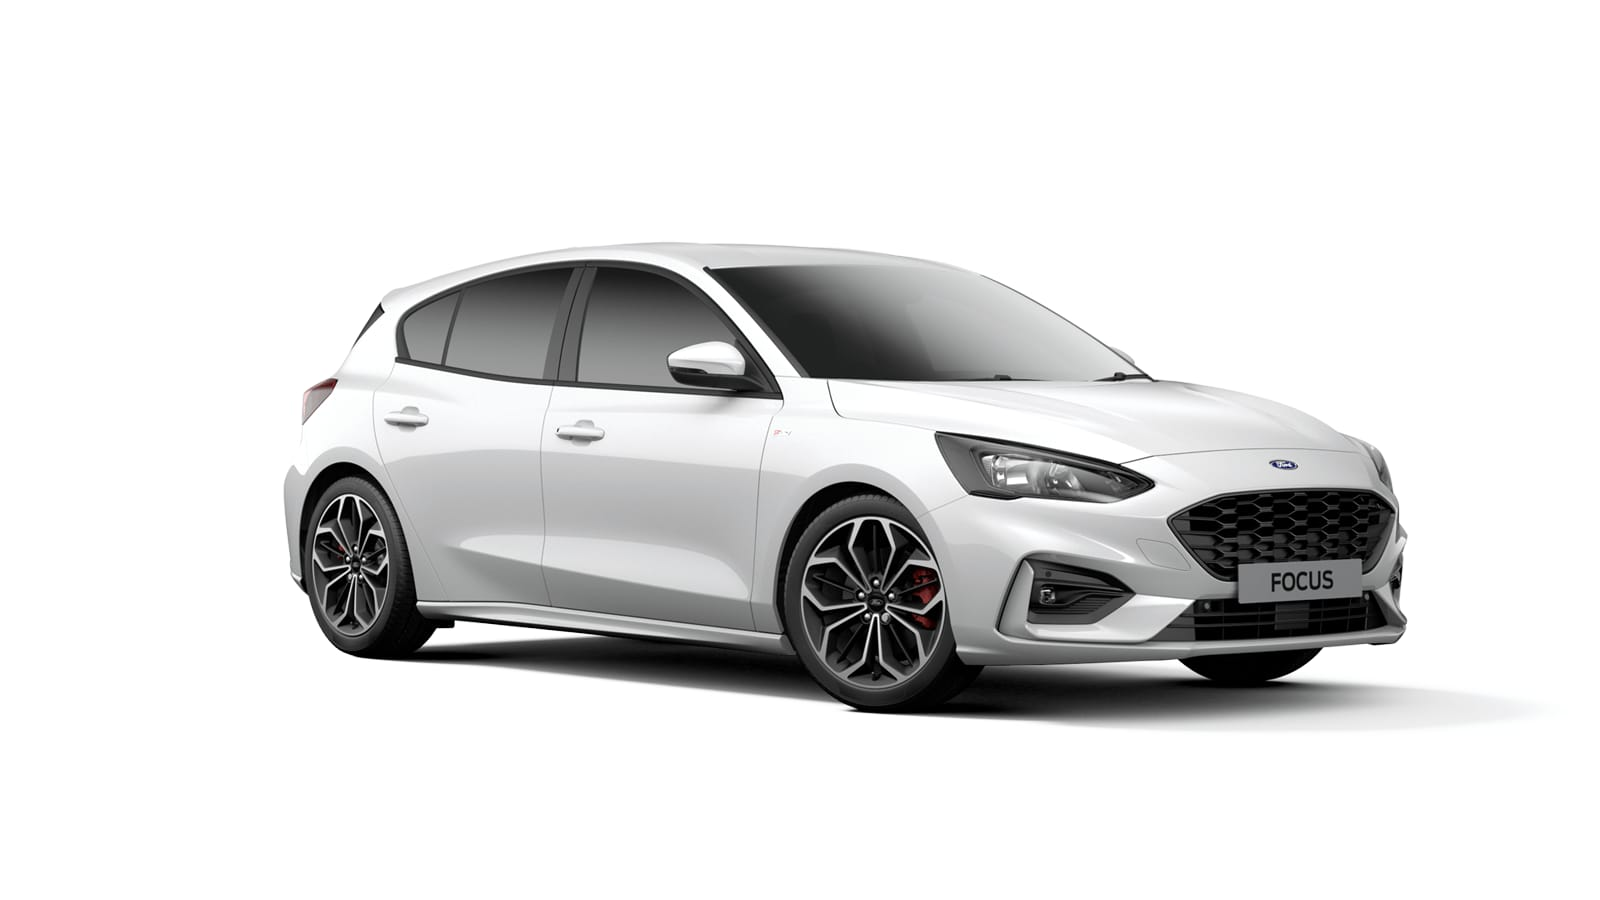 NEW FOCUS ST-Line X 5 Door in Frozen White